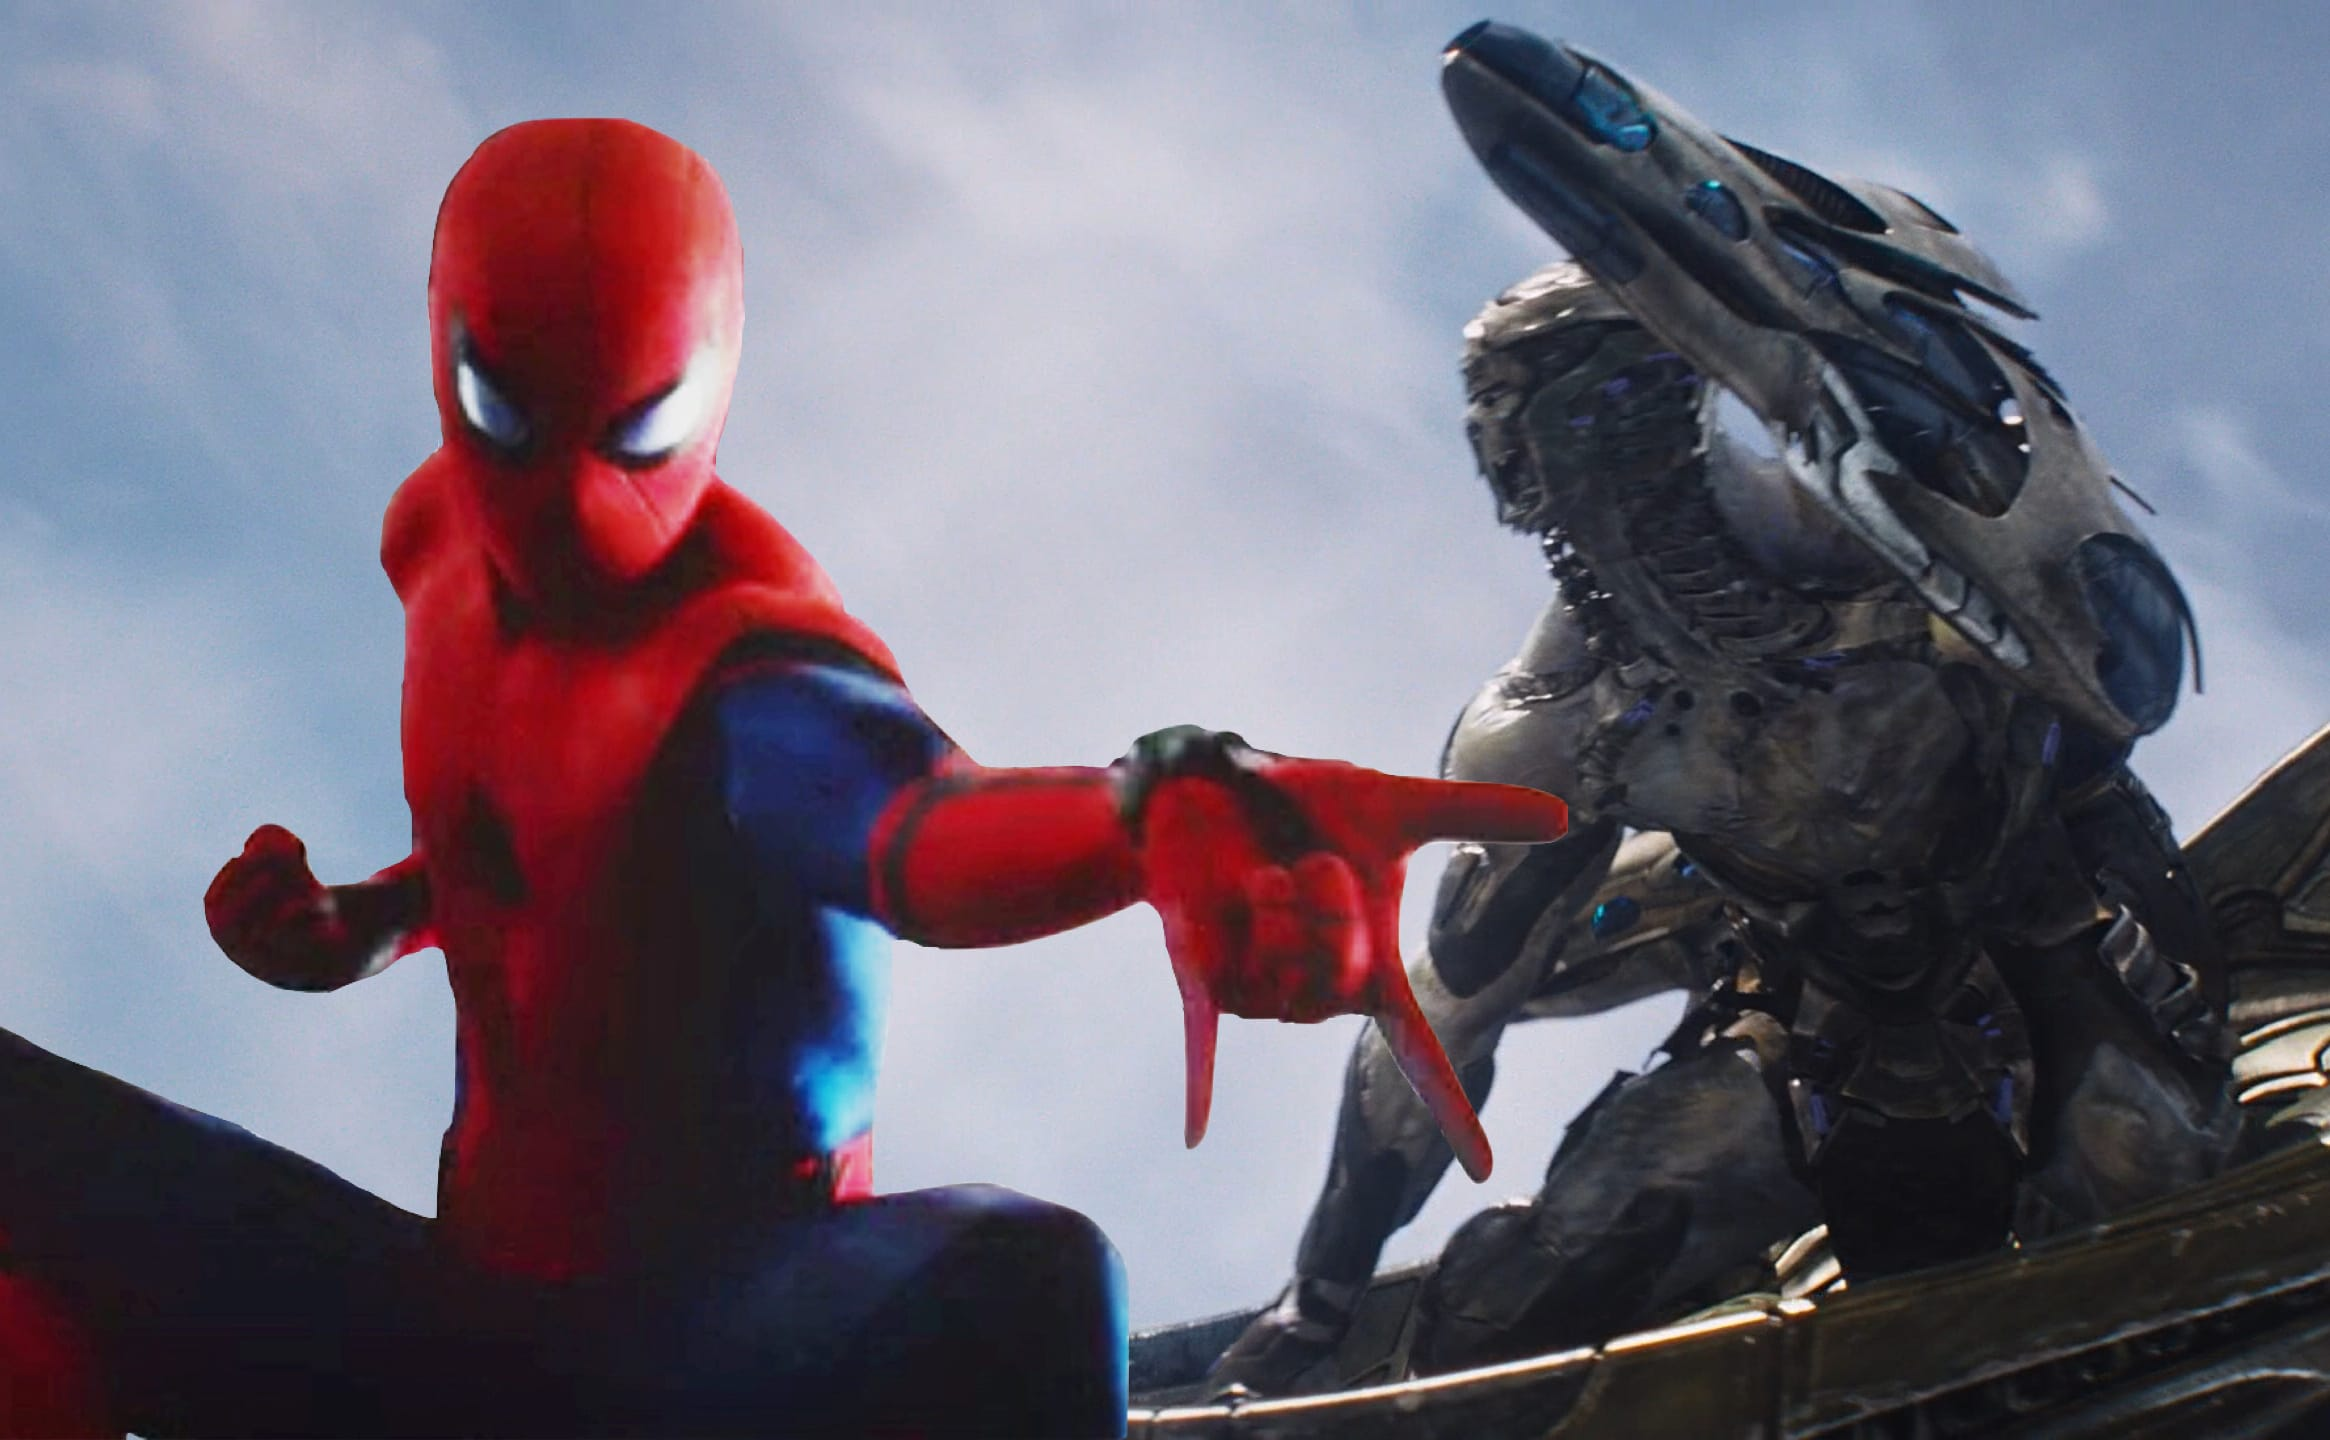 Official Synopsis u0026amp; Cast List For SPIDER-MAN: HOMECOMING; Plus Amazing Footage Description